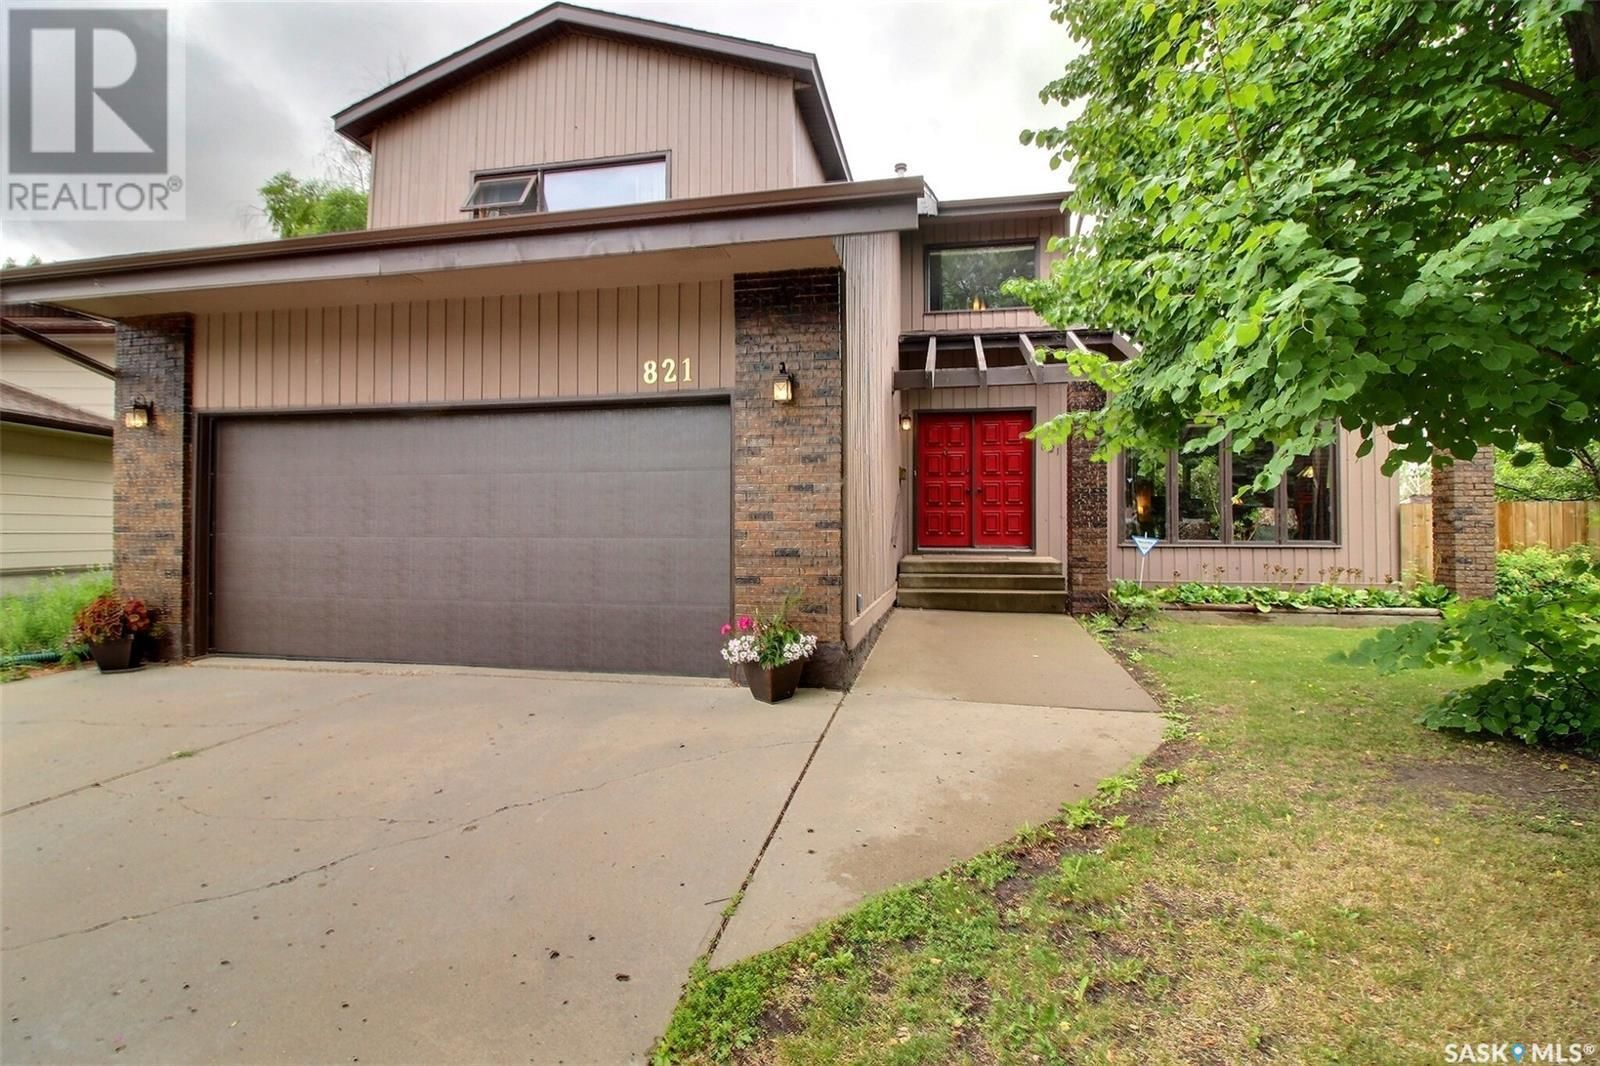 Main Photo: 821 Chester PL in Prince Albert: House for sale : MLS®# SK862877